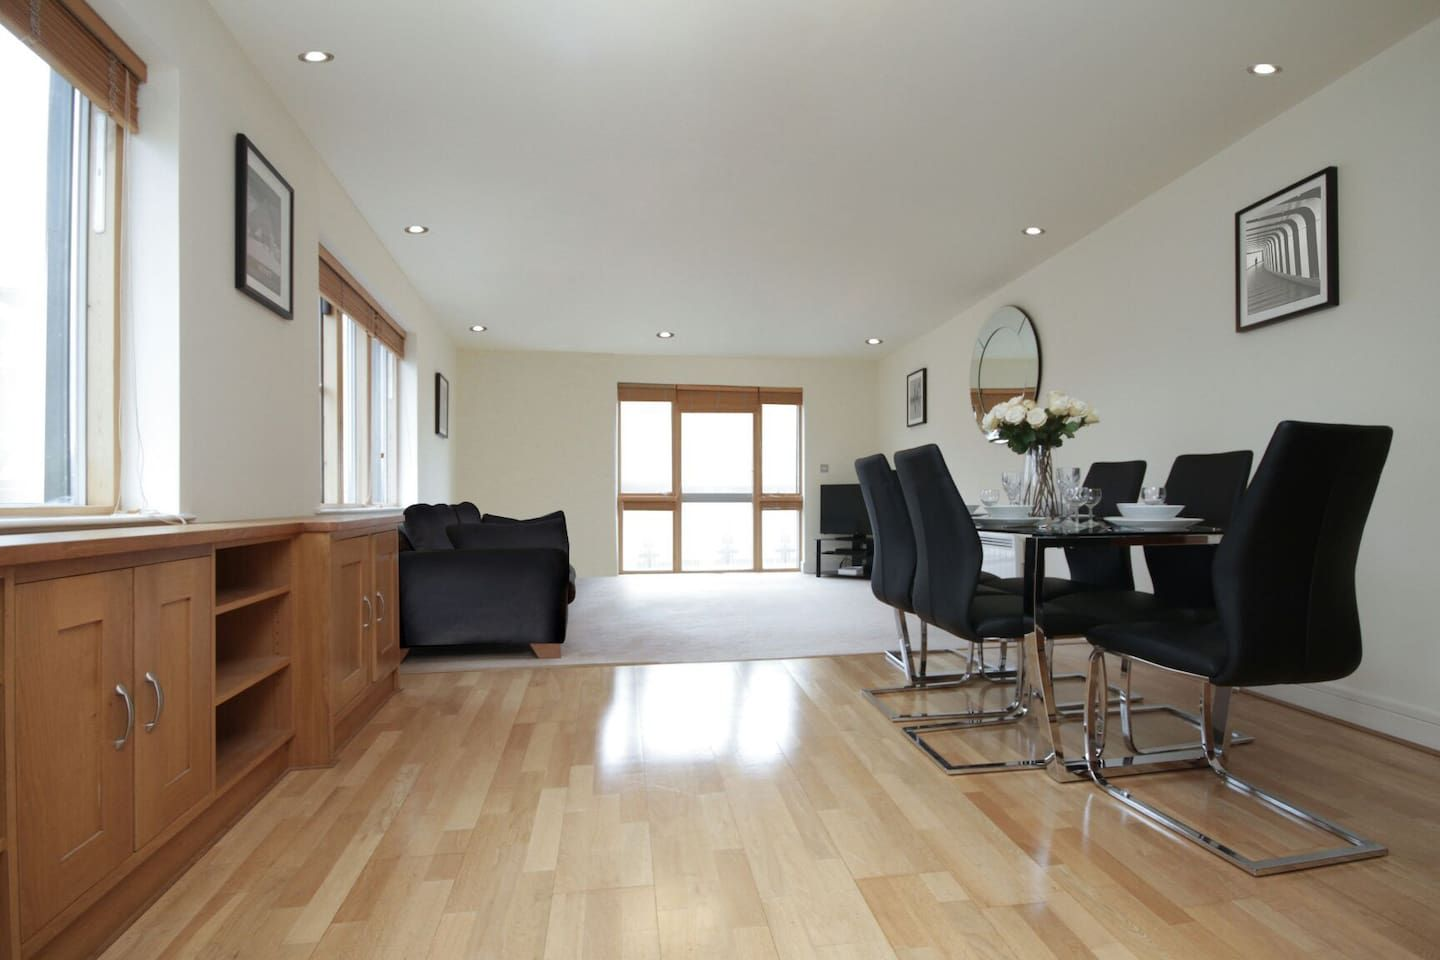 Magnificent 3 Bedroom Apartment - Departamentos en alquiler en Dublín #deptodublin